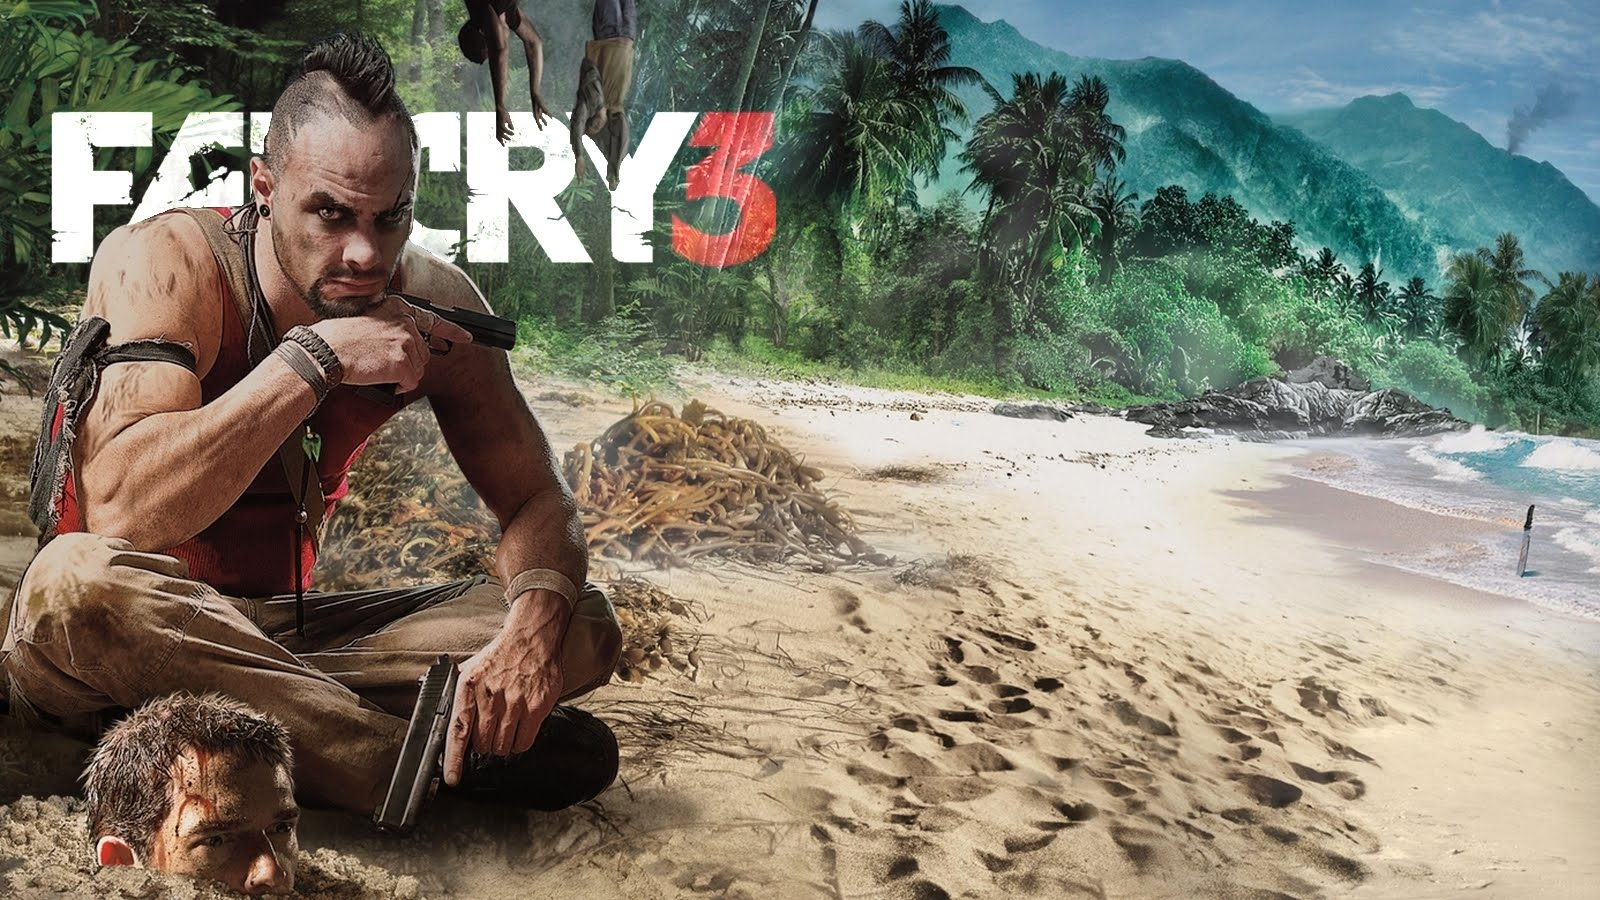 Free Download Far Cry 3 Wallpaper Hd 1600x900 Gamer Far Cry 3 Wallpaper 1600x900 For Your Desktop Mobile Tablet Explore 49 Far Cry 3 Wallpaper 1080p Cry Of Fear